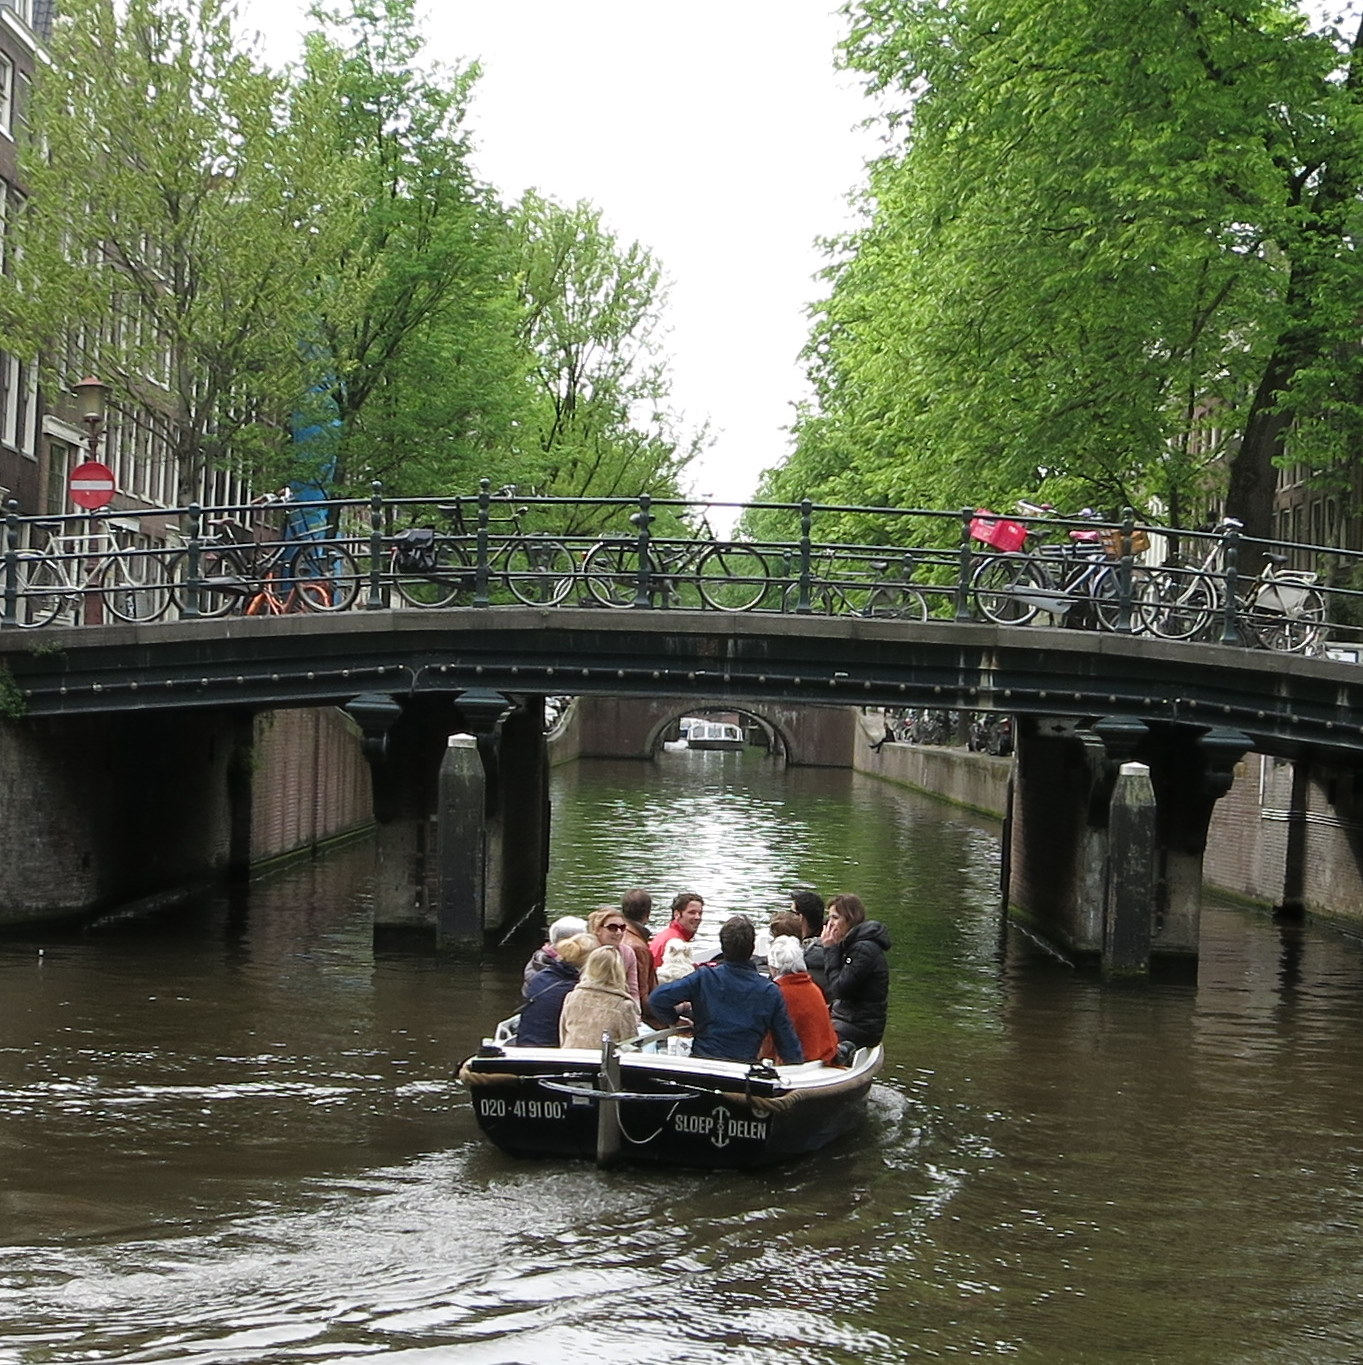 TOP 5 CANAL BOAT RENTALS IN AMSTE